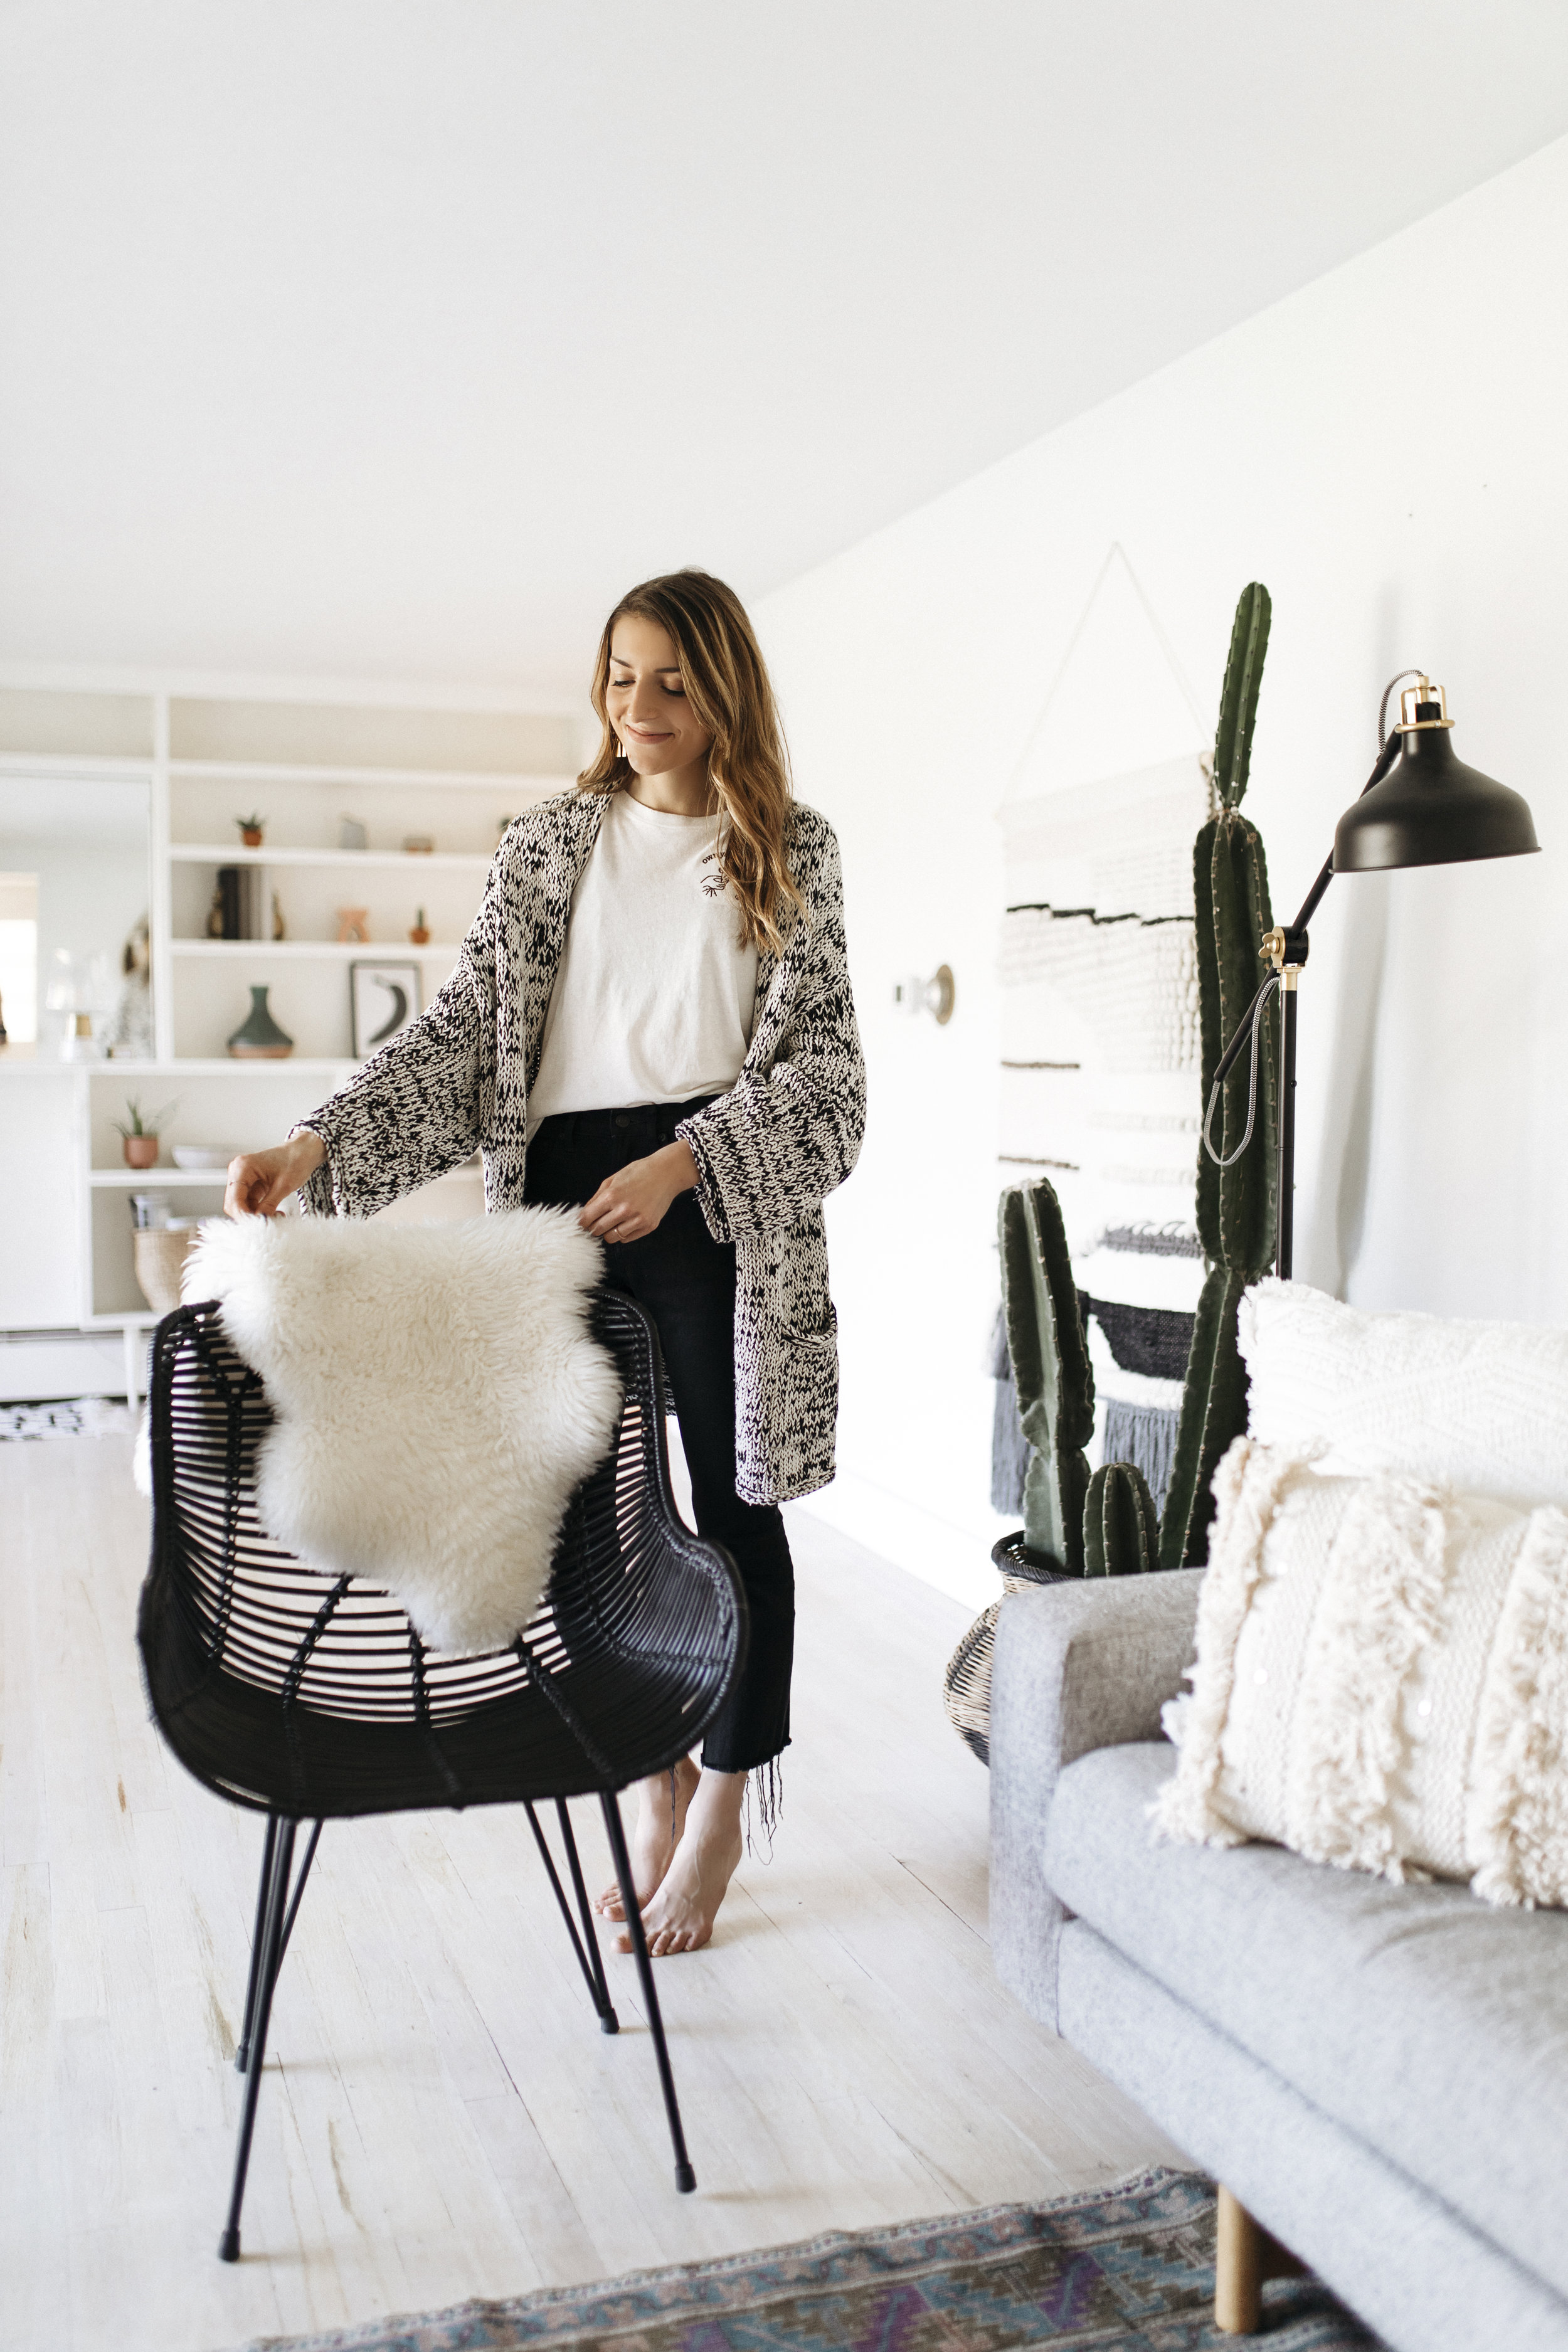 Sheepskins and blankets are a no-brainer for cold weather decor and to Hygge up your home. They are so versatile for laying